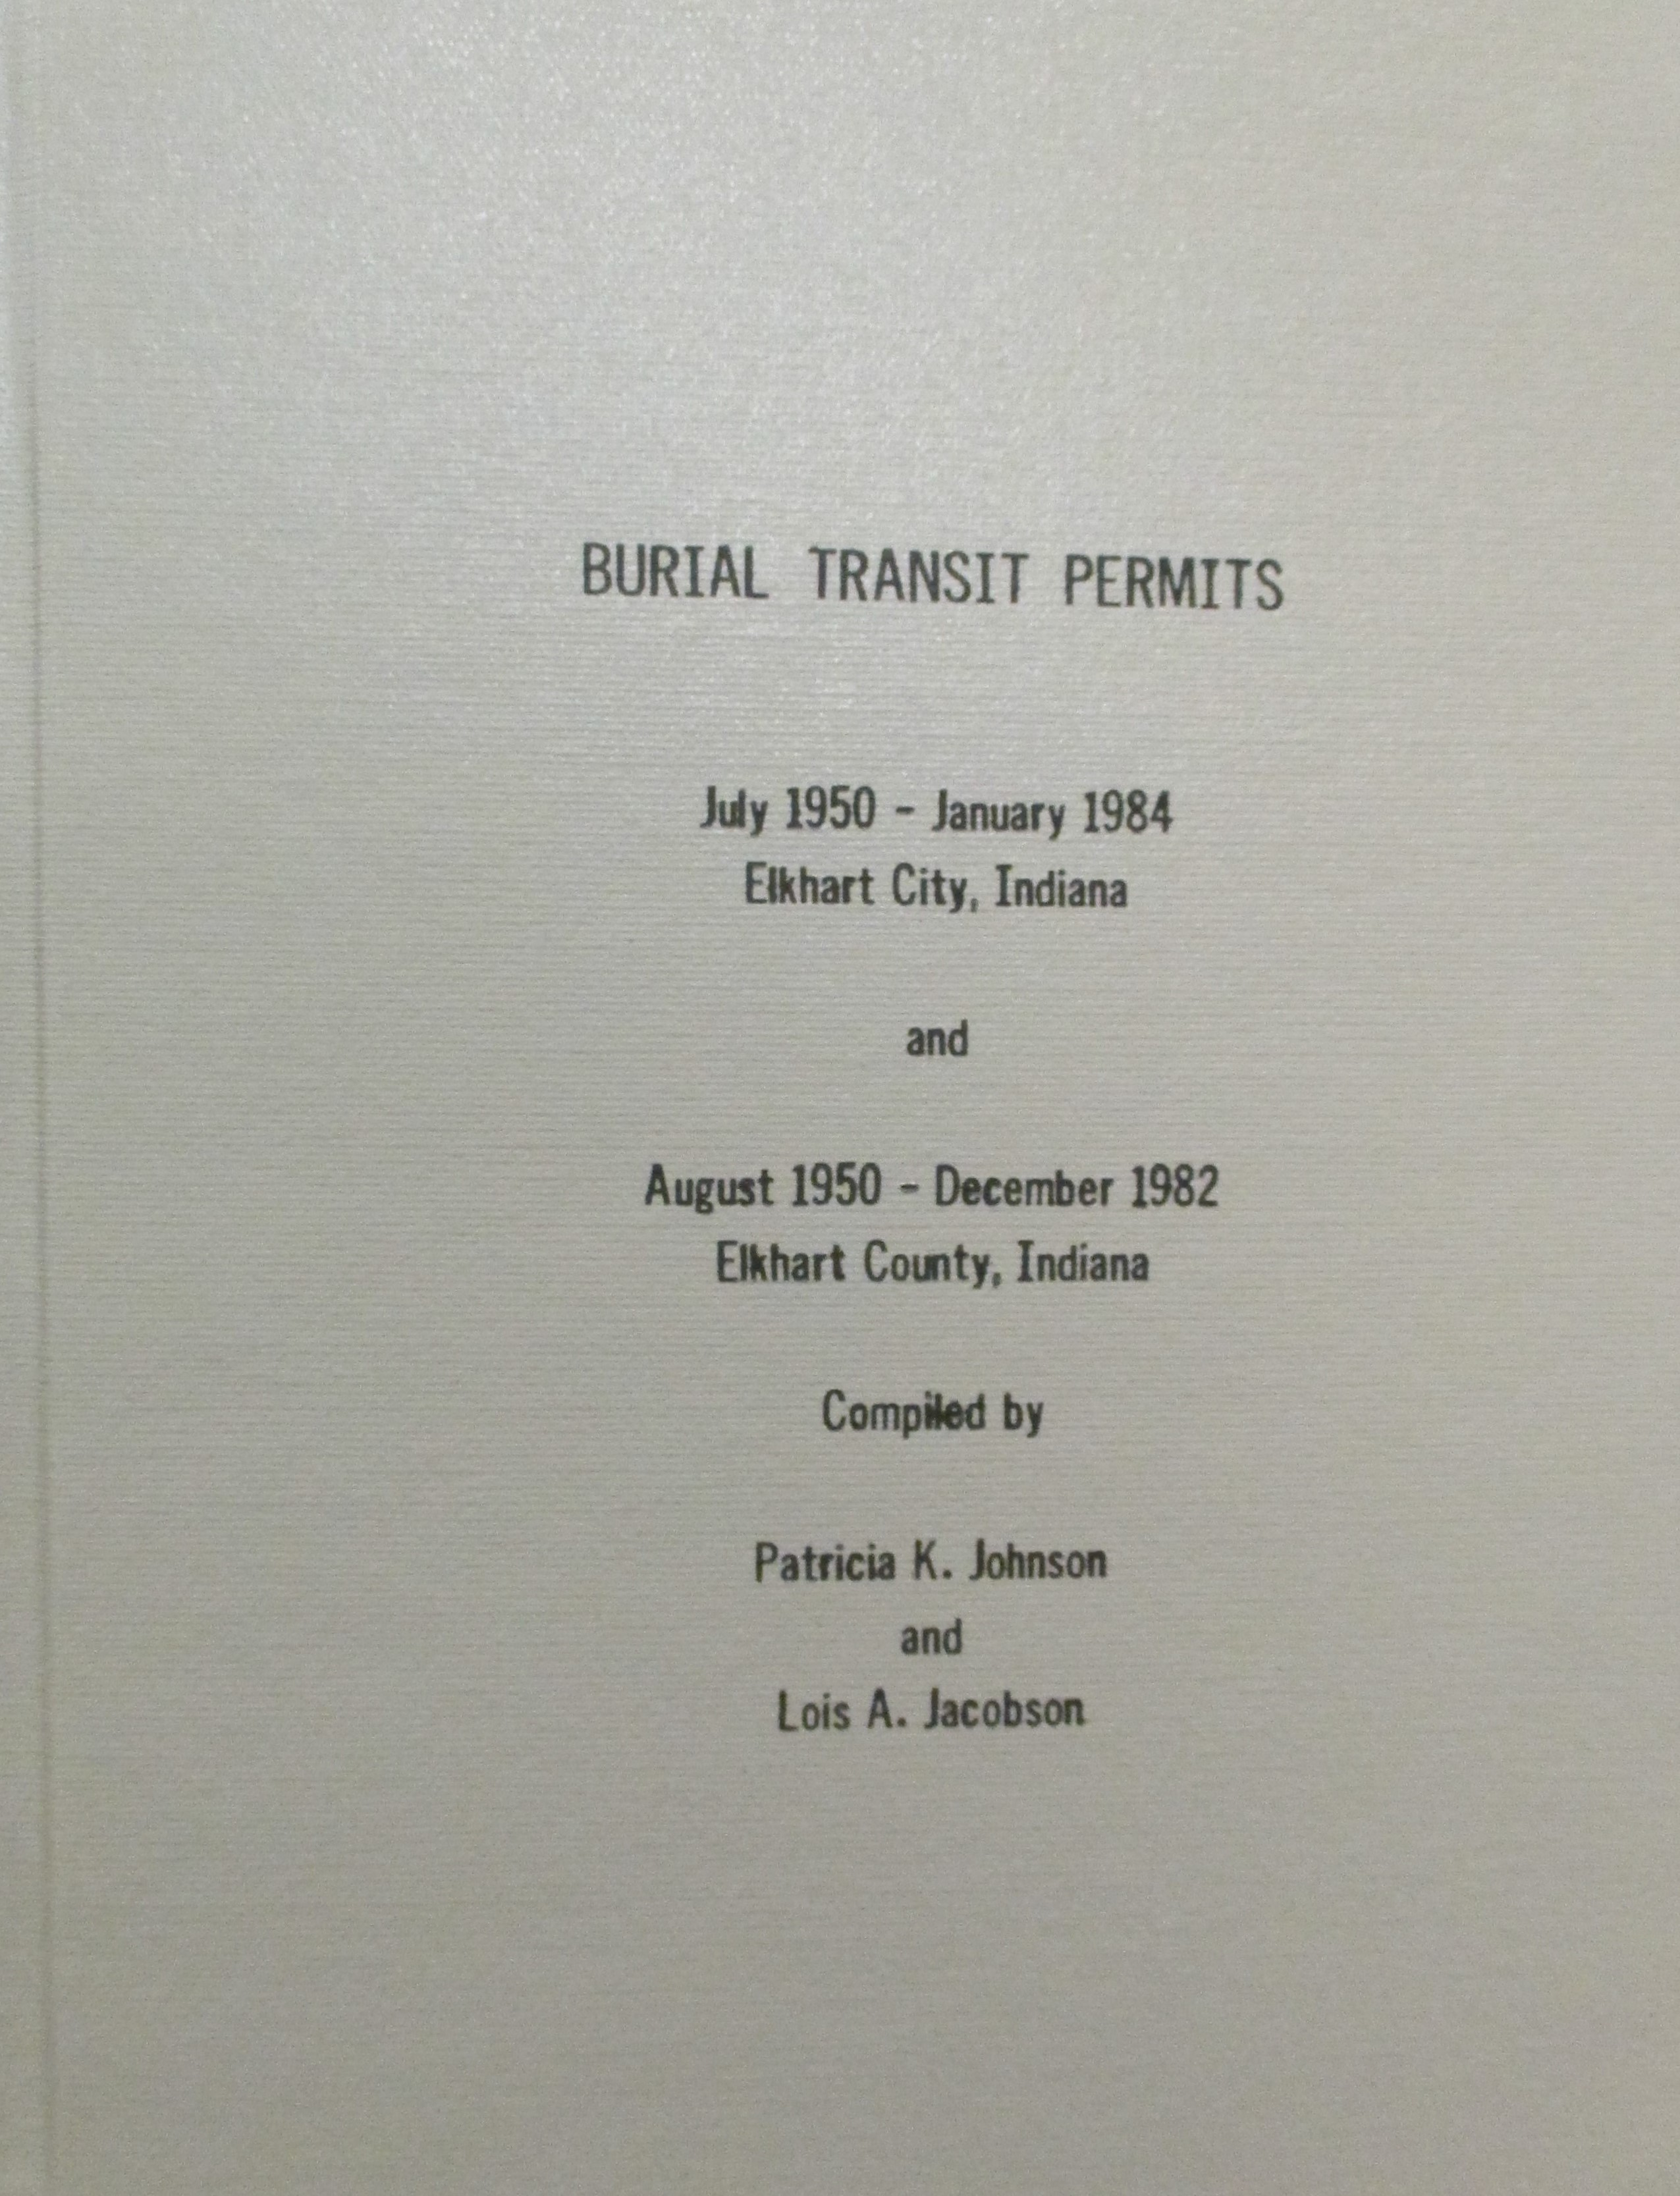 Burial Transit Permits July 1950-Jan1984 Elkhart City and Aug 1950-Dec.1982 Elkhart County